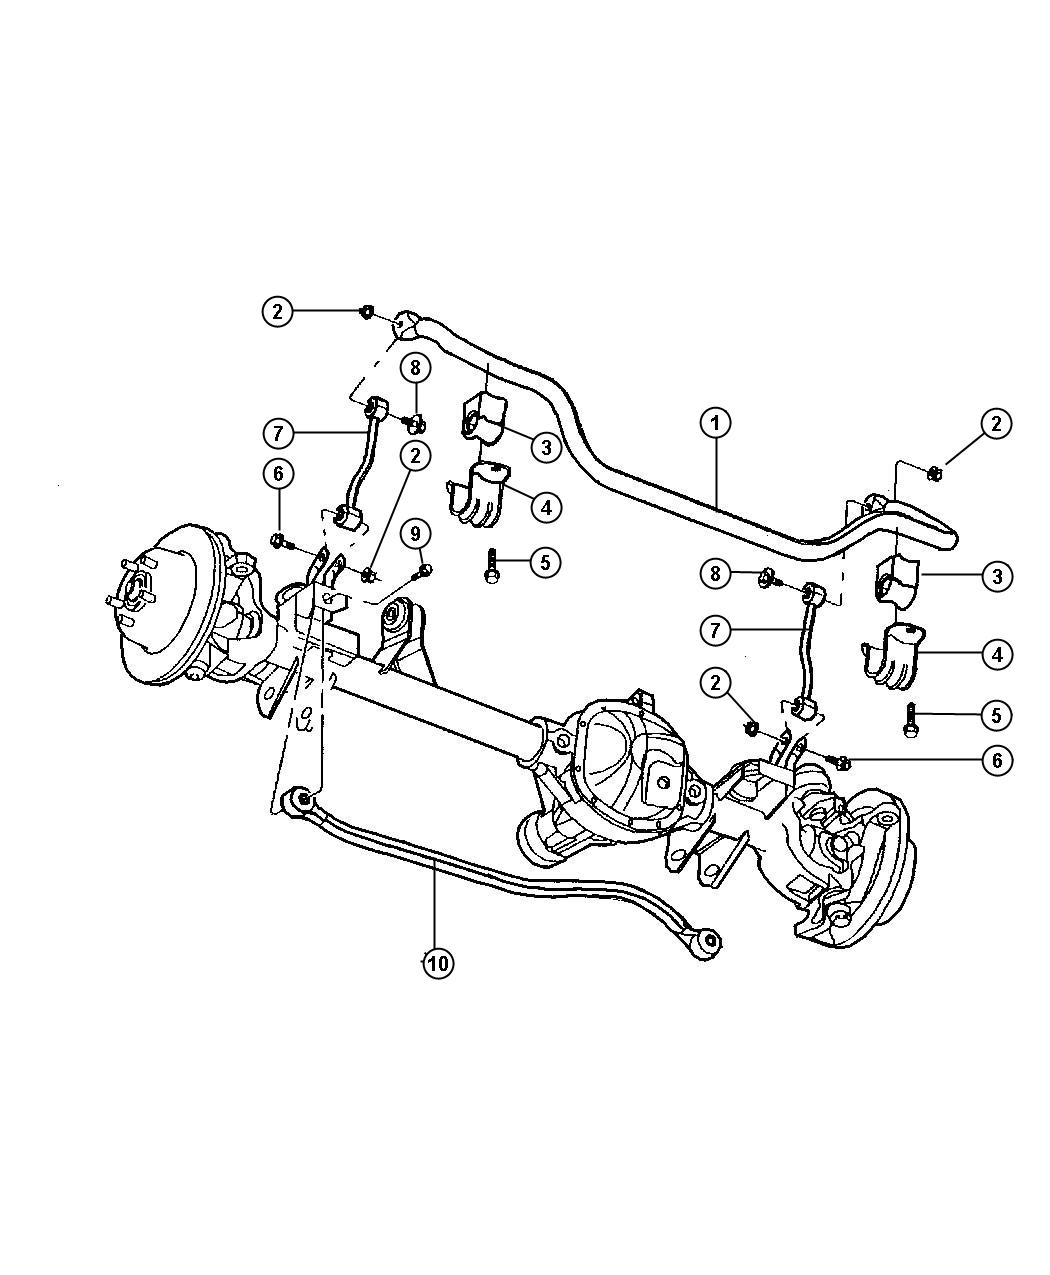 2003 Dodge Ram Exhaust Diagram Wiring Diagram Photos For Help Your